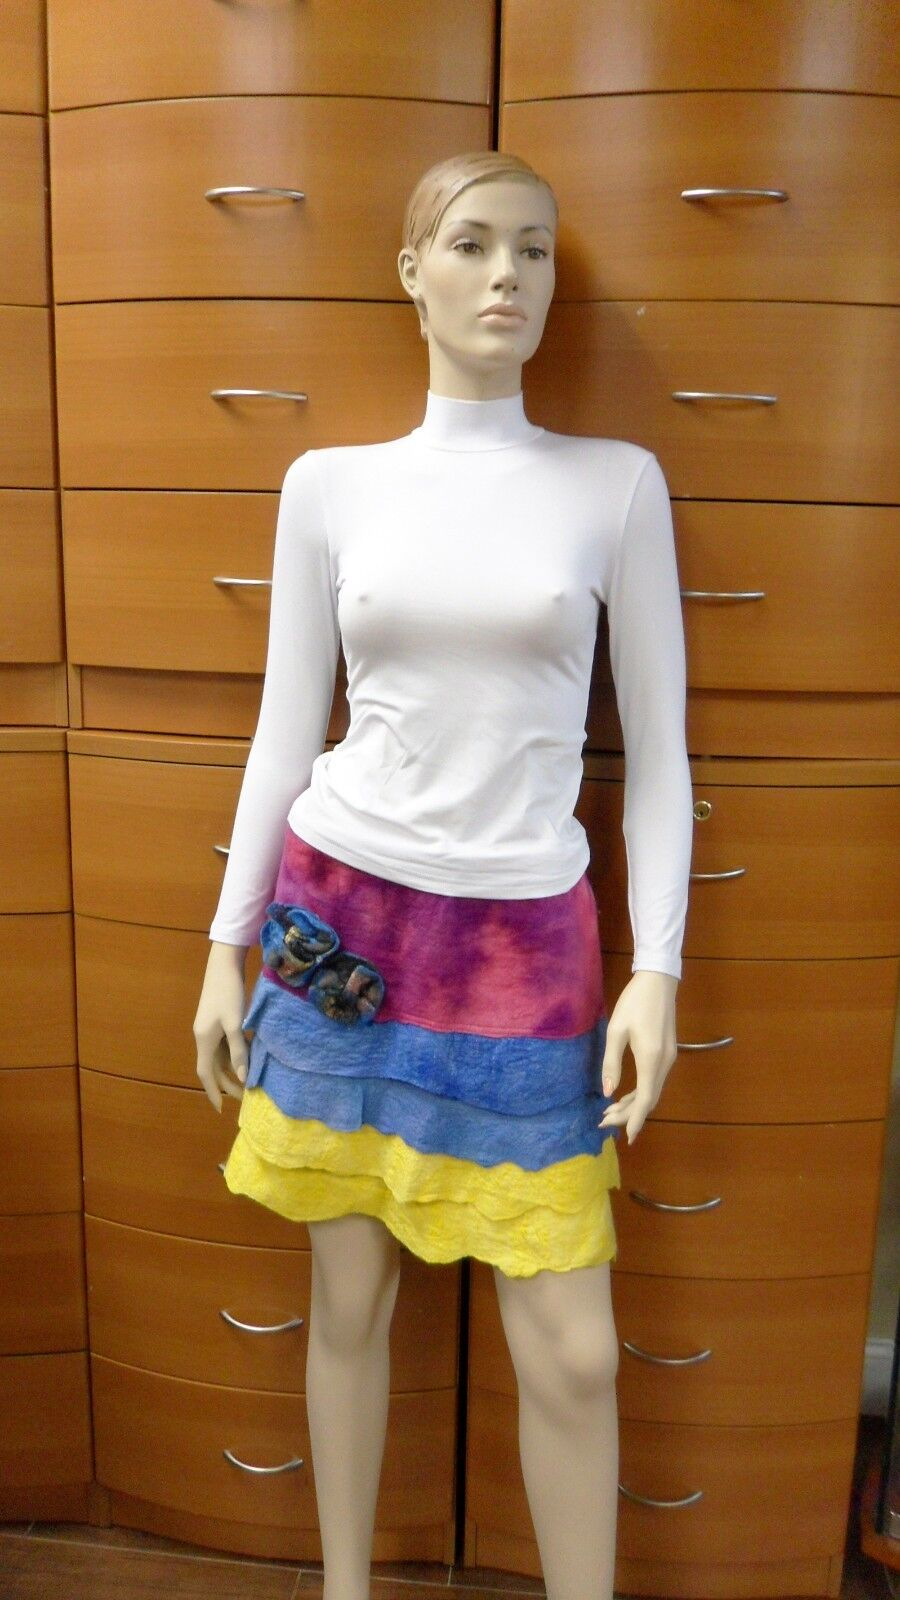 PARTY SKIRT SHORT FELTED WOOL HANDMADE IN EUROPE COLORFUL UNIQUE ARTSY US 8 M